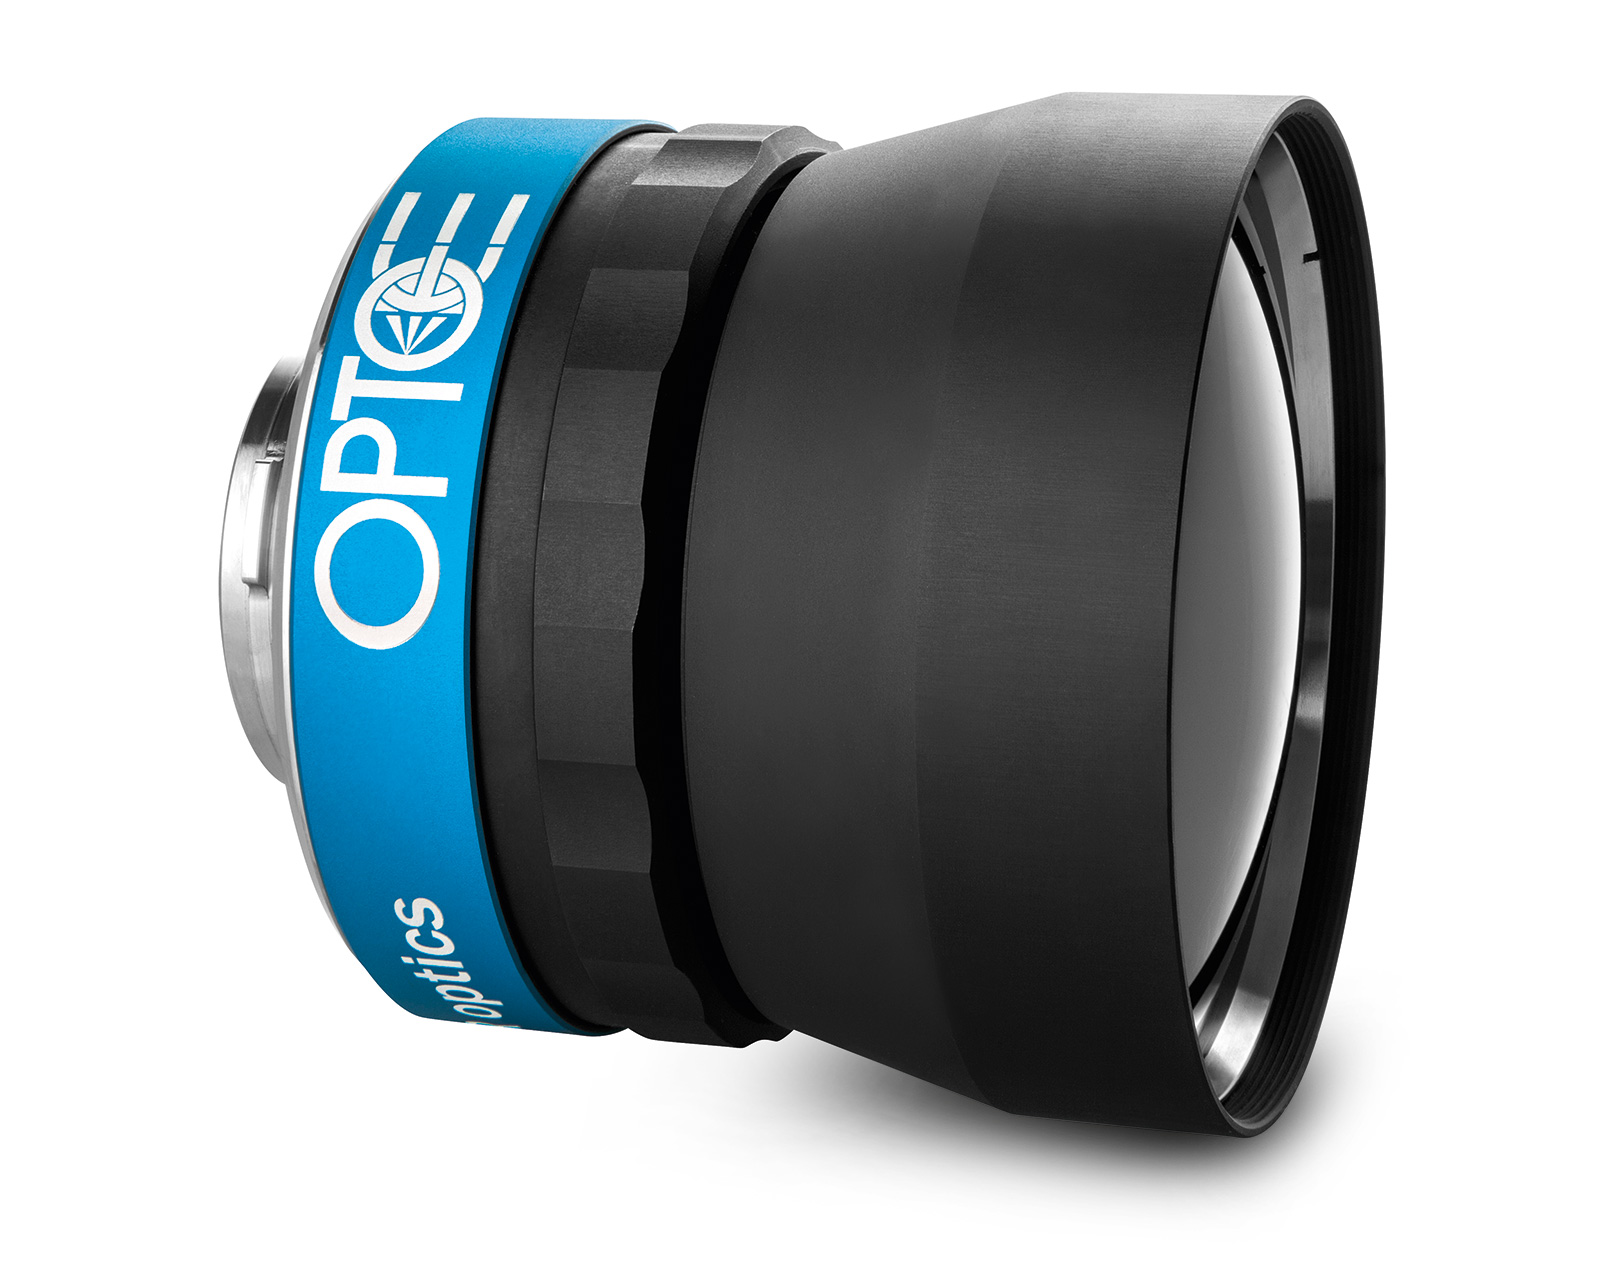 MWIR fixed focal length lenses for InSb sensors up to 21mm